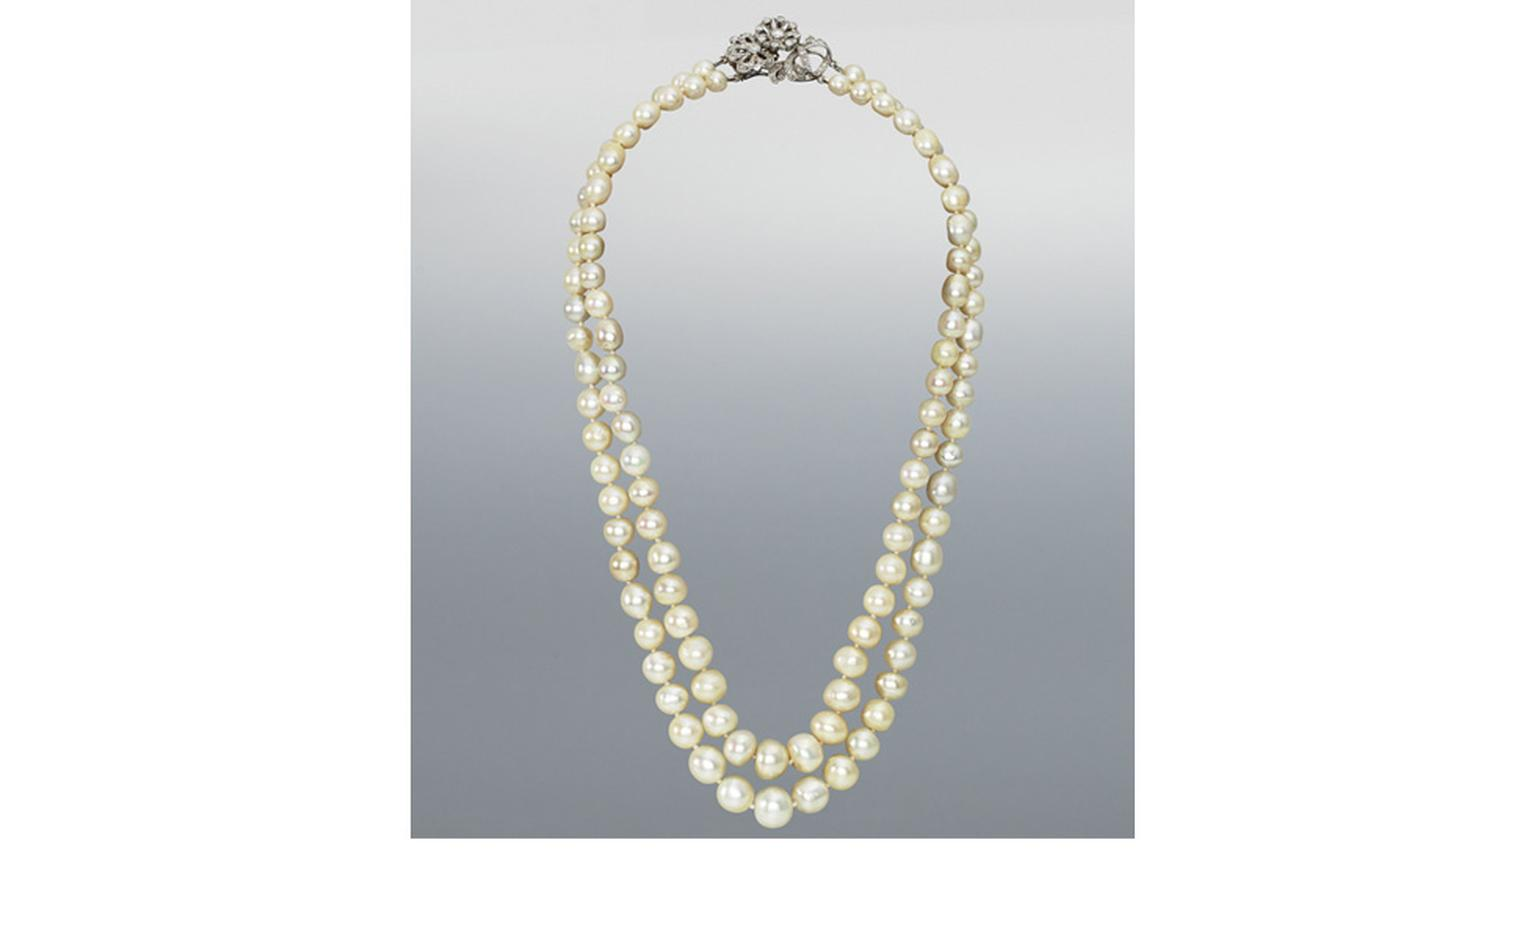 Lot 197. A double-row natural pearl necklace with diamond clasp. Estimate £70,000-90,000. SOLD FOR £253,250.